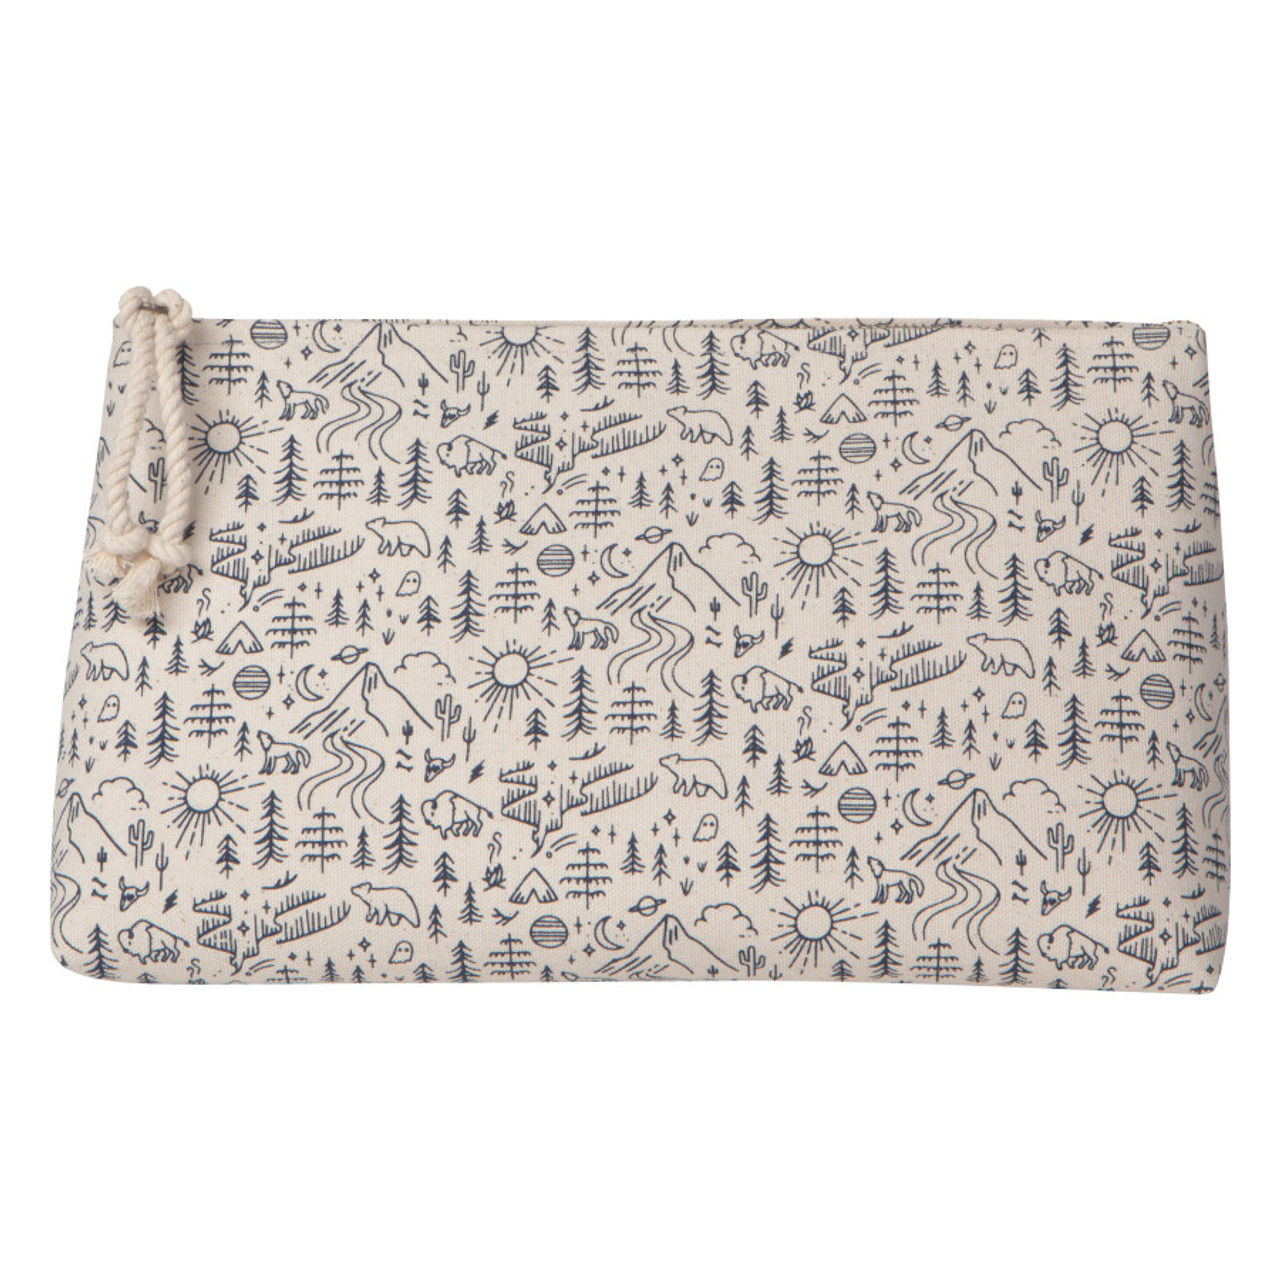 COSMETIC BAG LARGE - STAY WILD